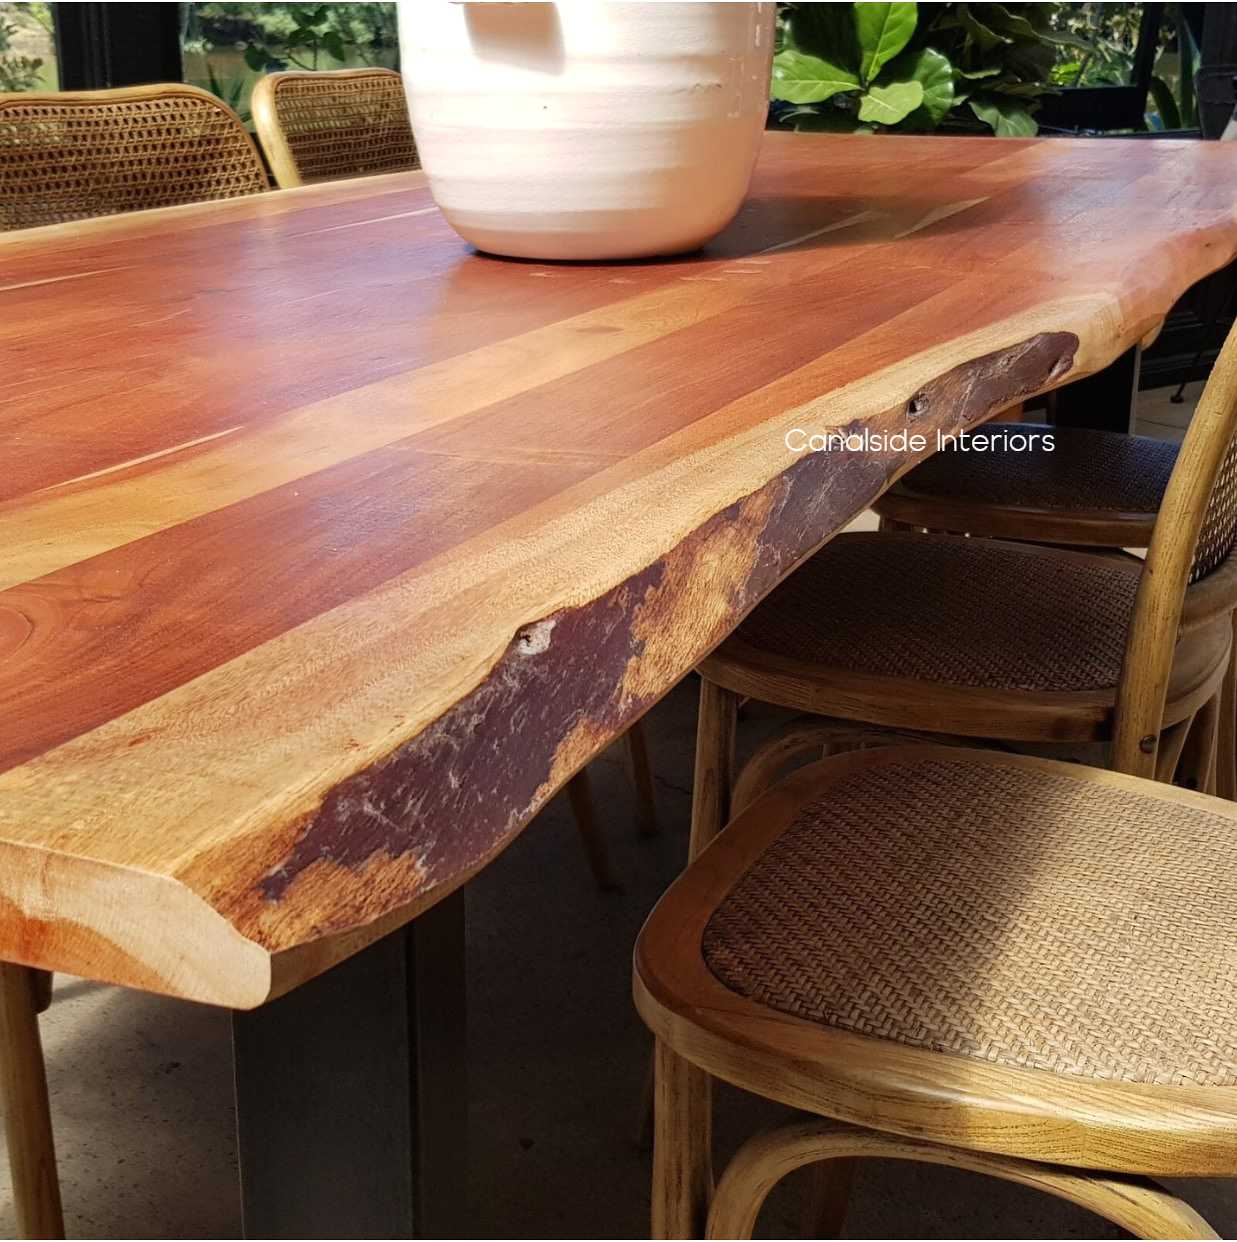 Washington Dining Table With Live Edge Top 250cm Canalside Interiors